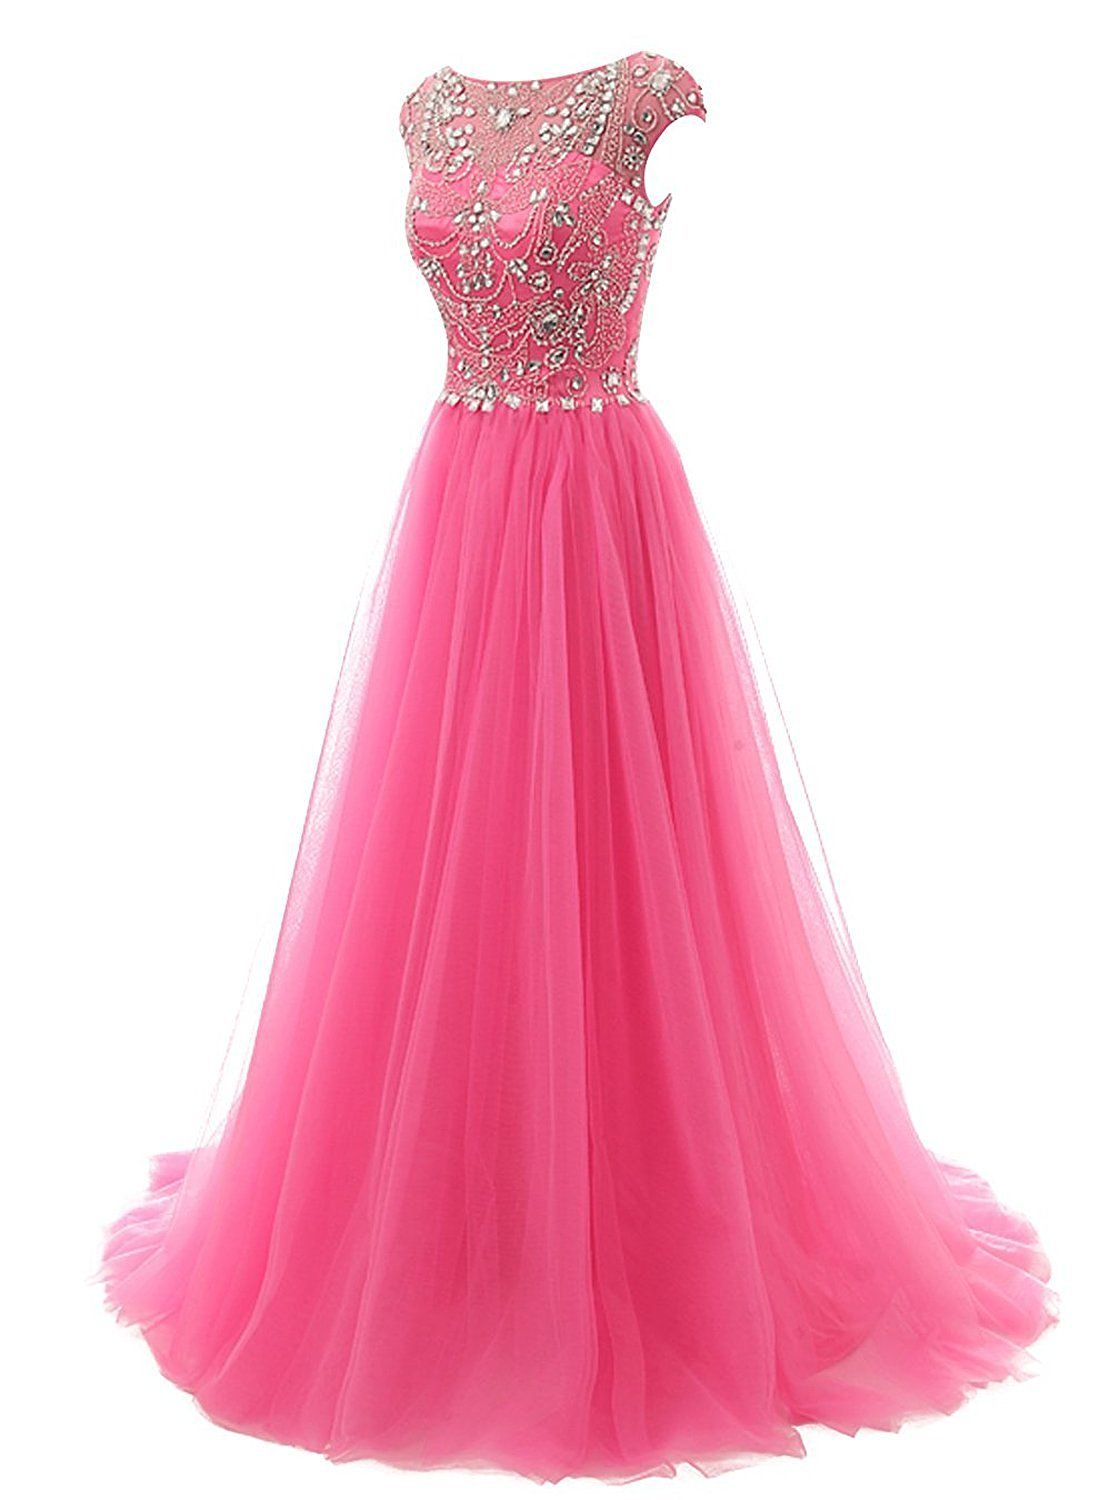 504add1b6a6 Amazon.com  FASHION DRESS Women s Beads Long Prom Dress Tulle Cap Sleeves  Evening Dress US2 Blush  Clothing